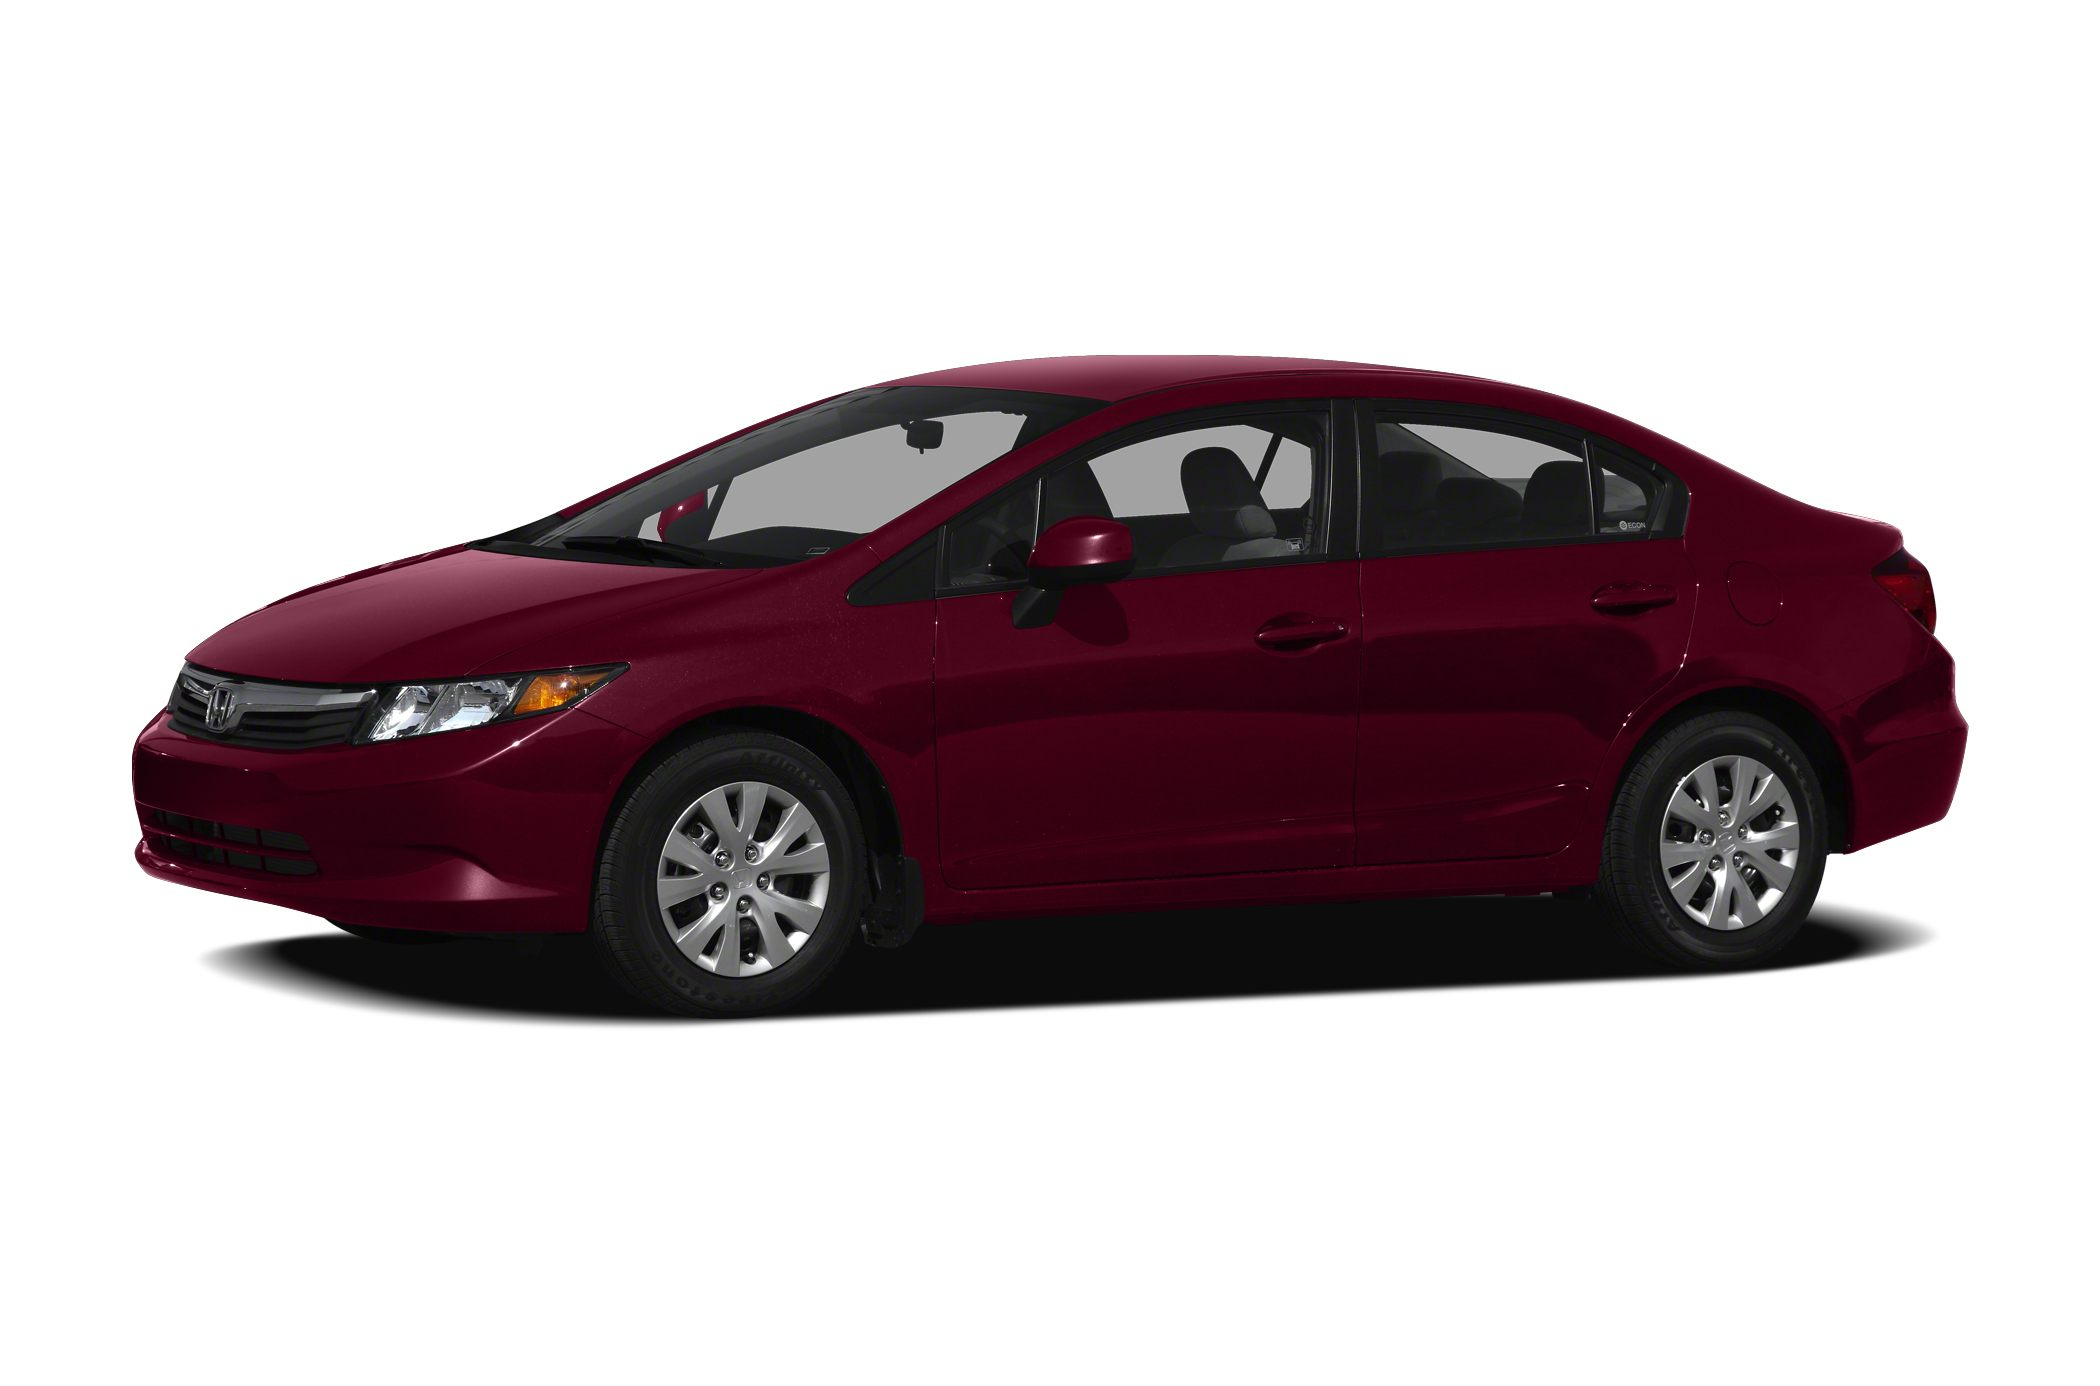 2012 Honda Civic LX Civic LX and FWD The car youve always wanted Hurry in Previous owner purch